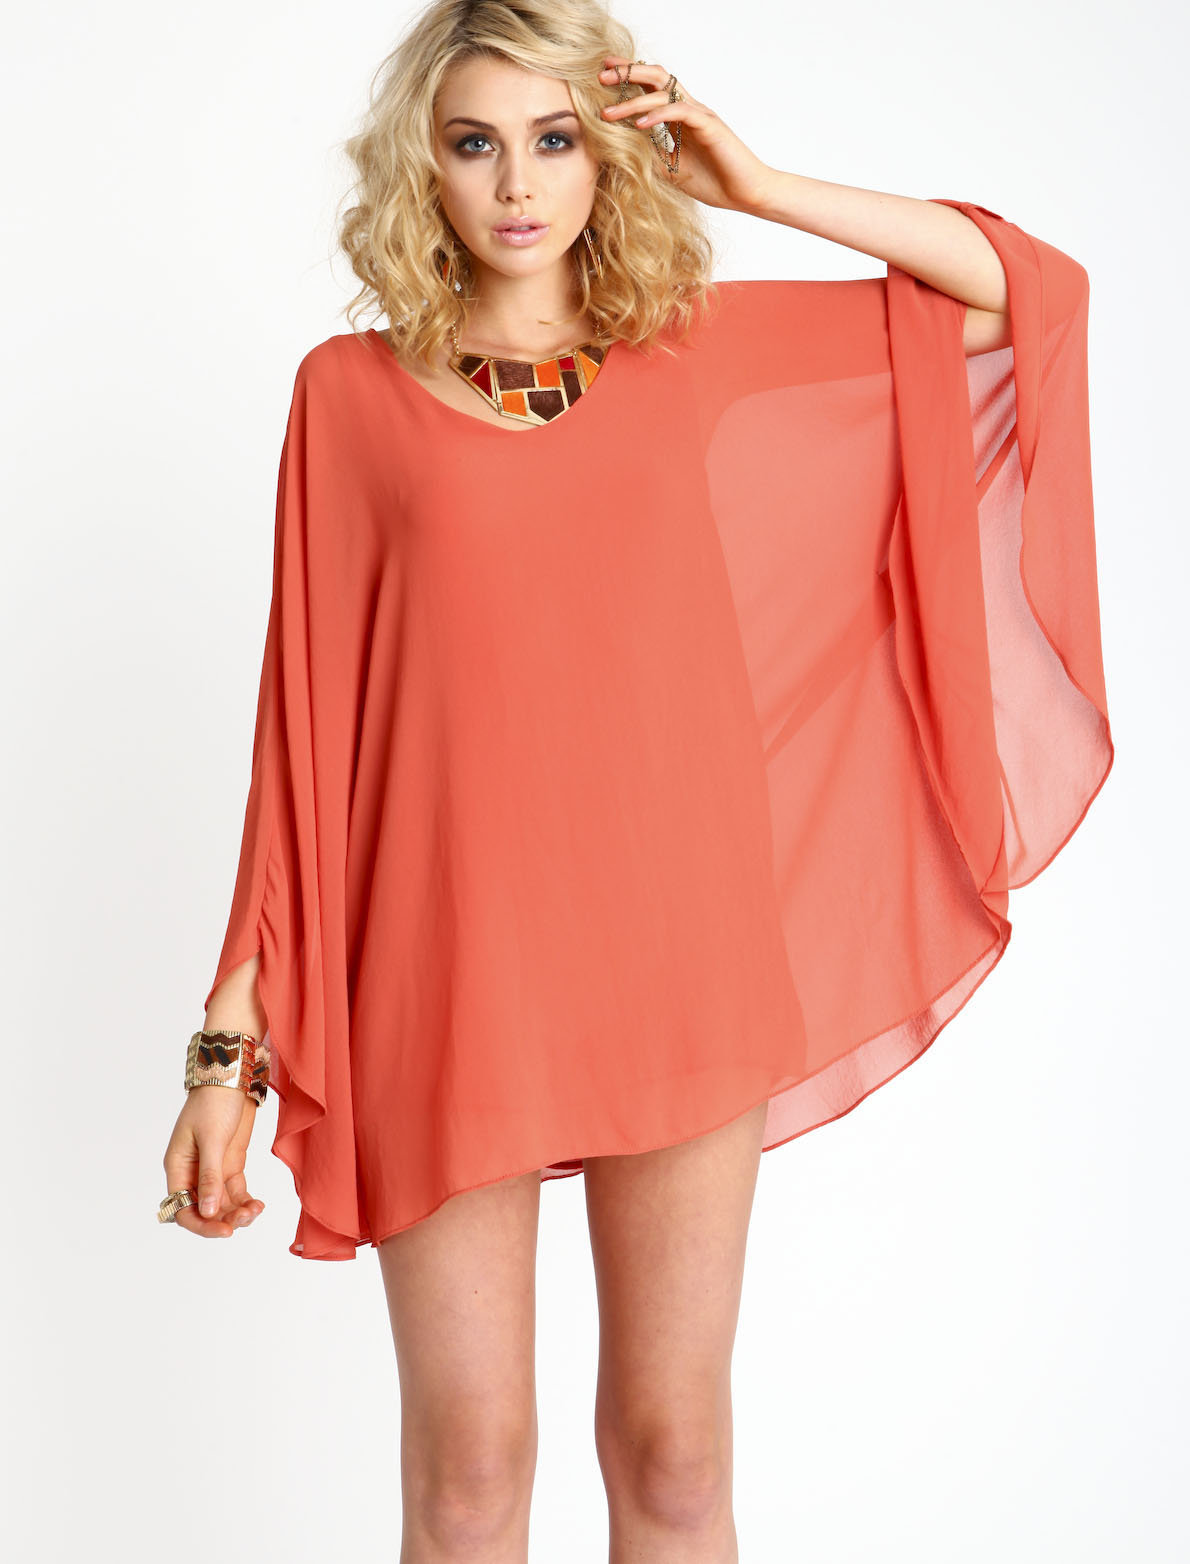 Poncho Chiffon Dress from Love Culture